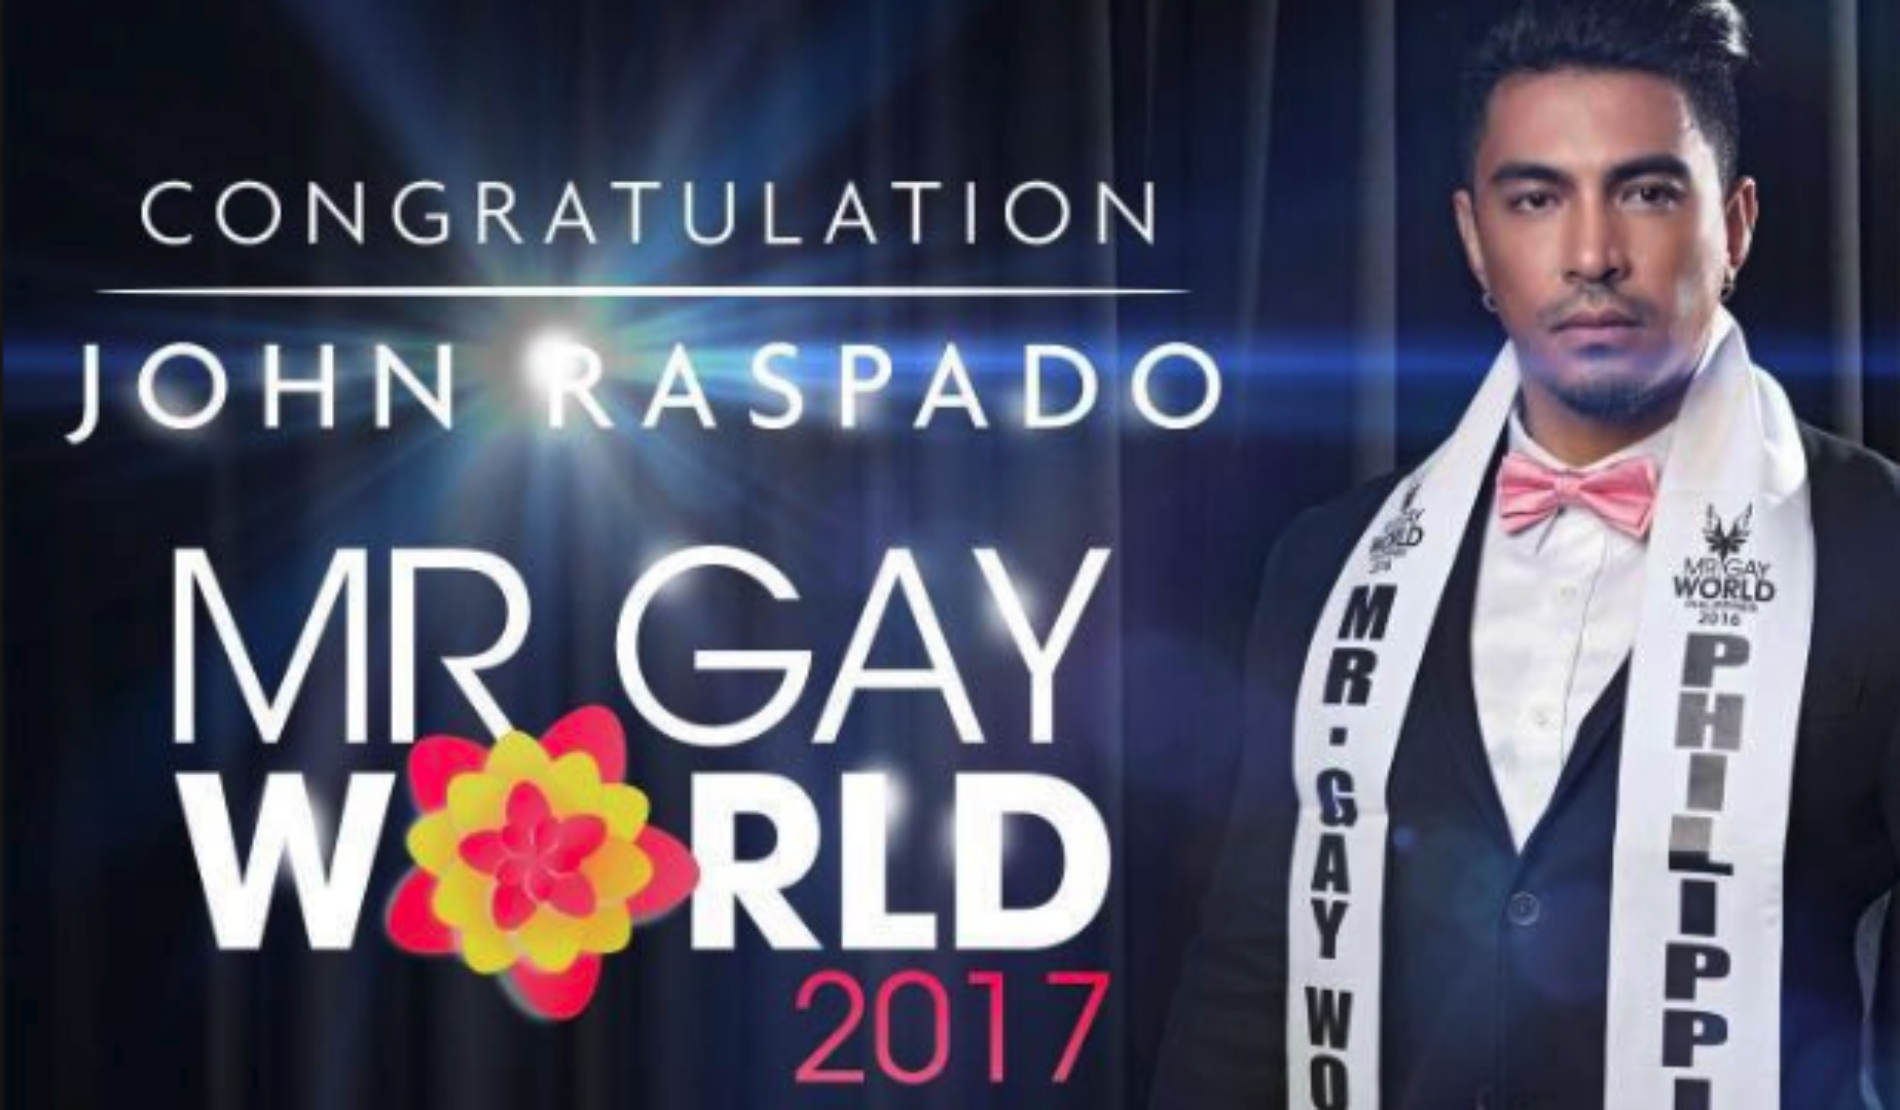 Mr Gay World 2017 Is Crowned